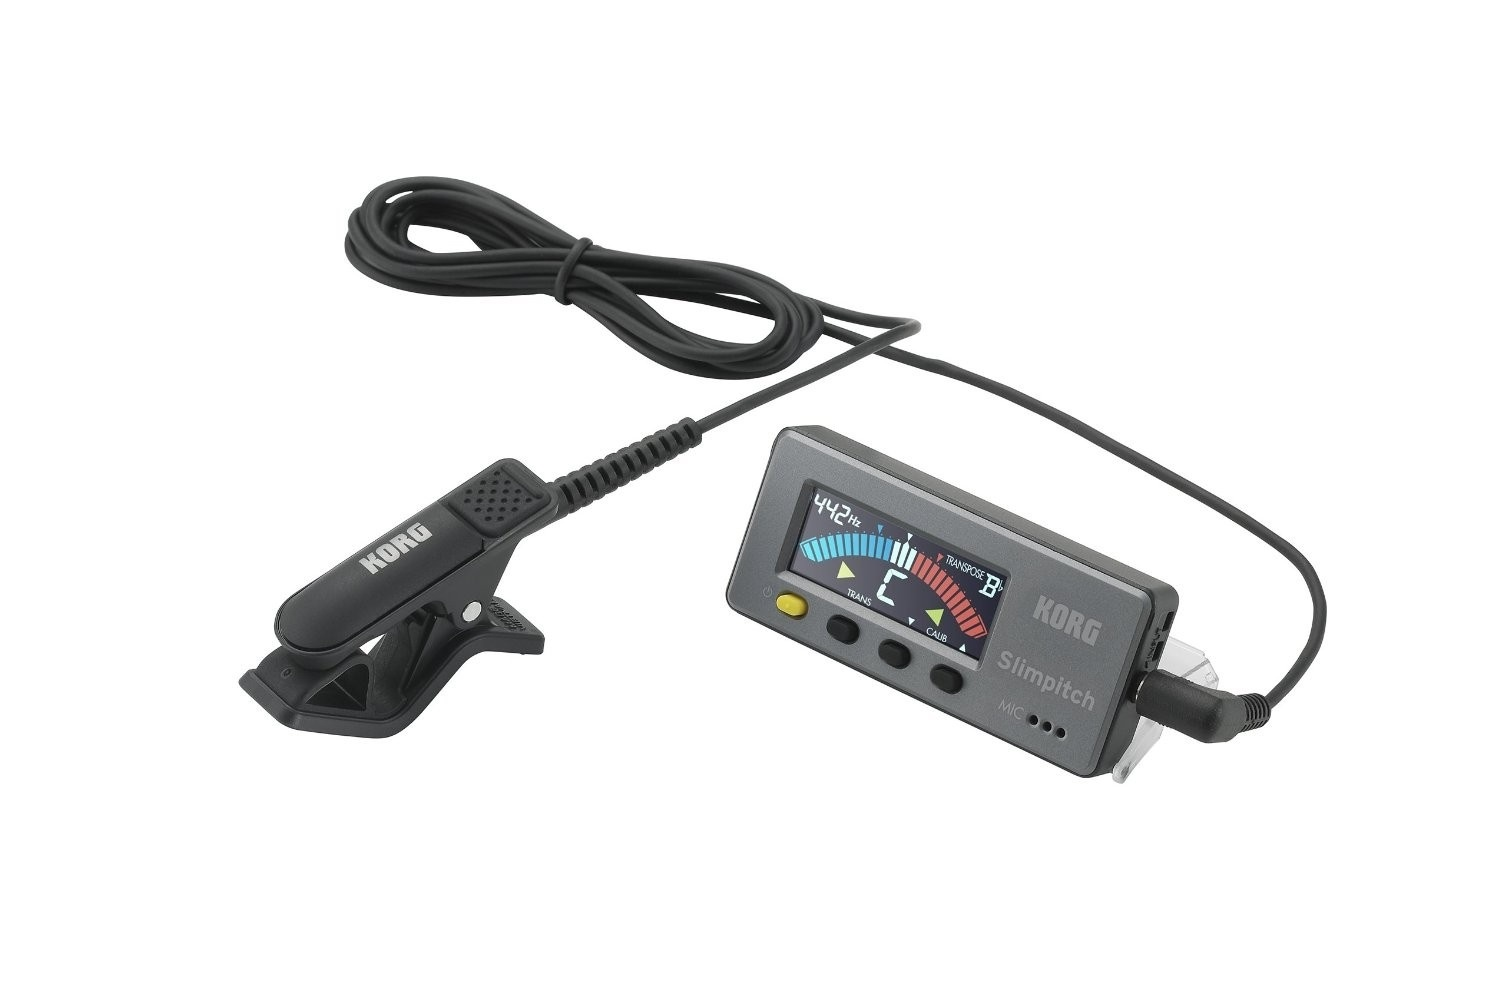 Korg Slimpitch Chromatic Tuner with Contact Mic (Black)